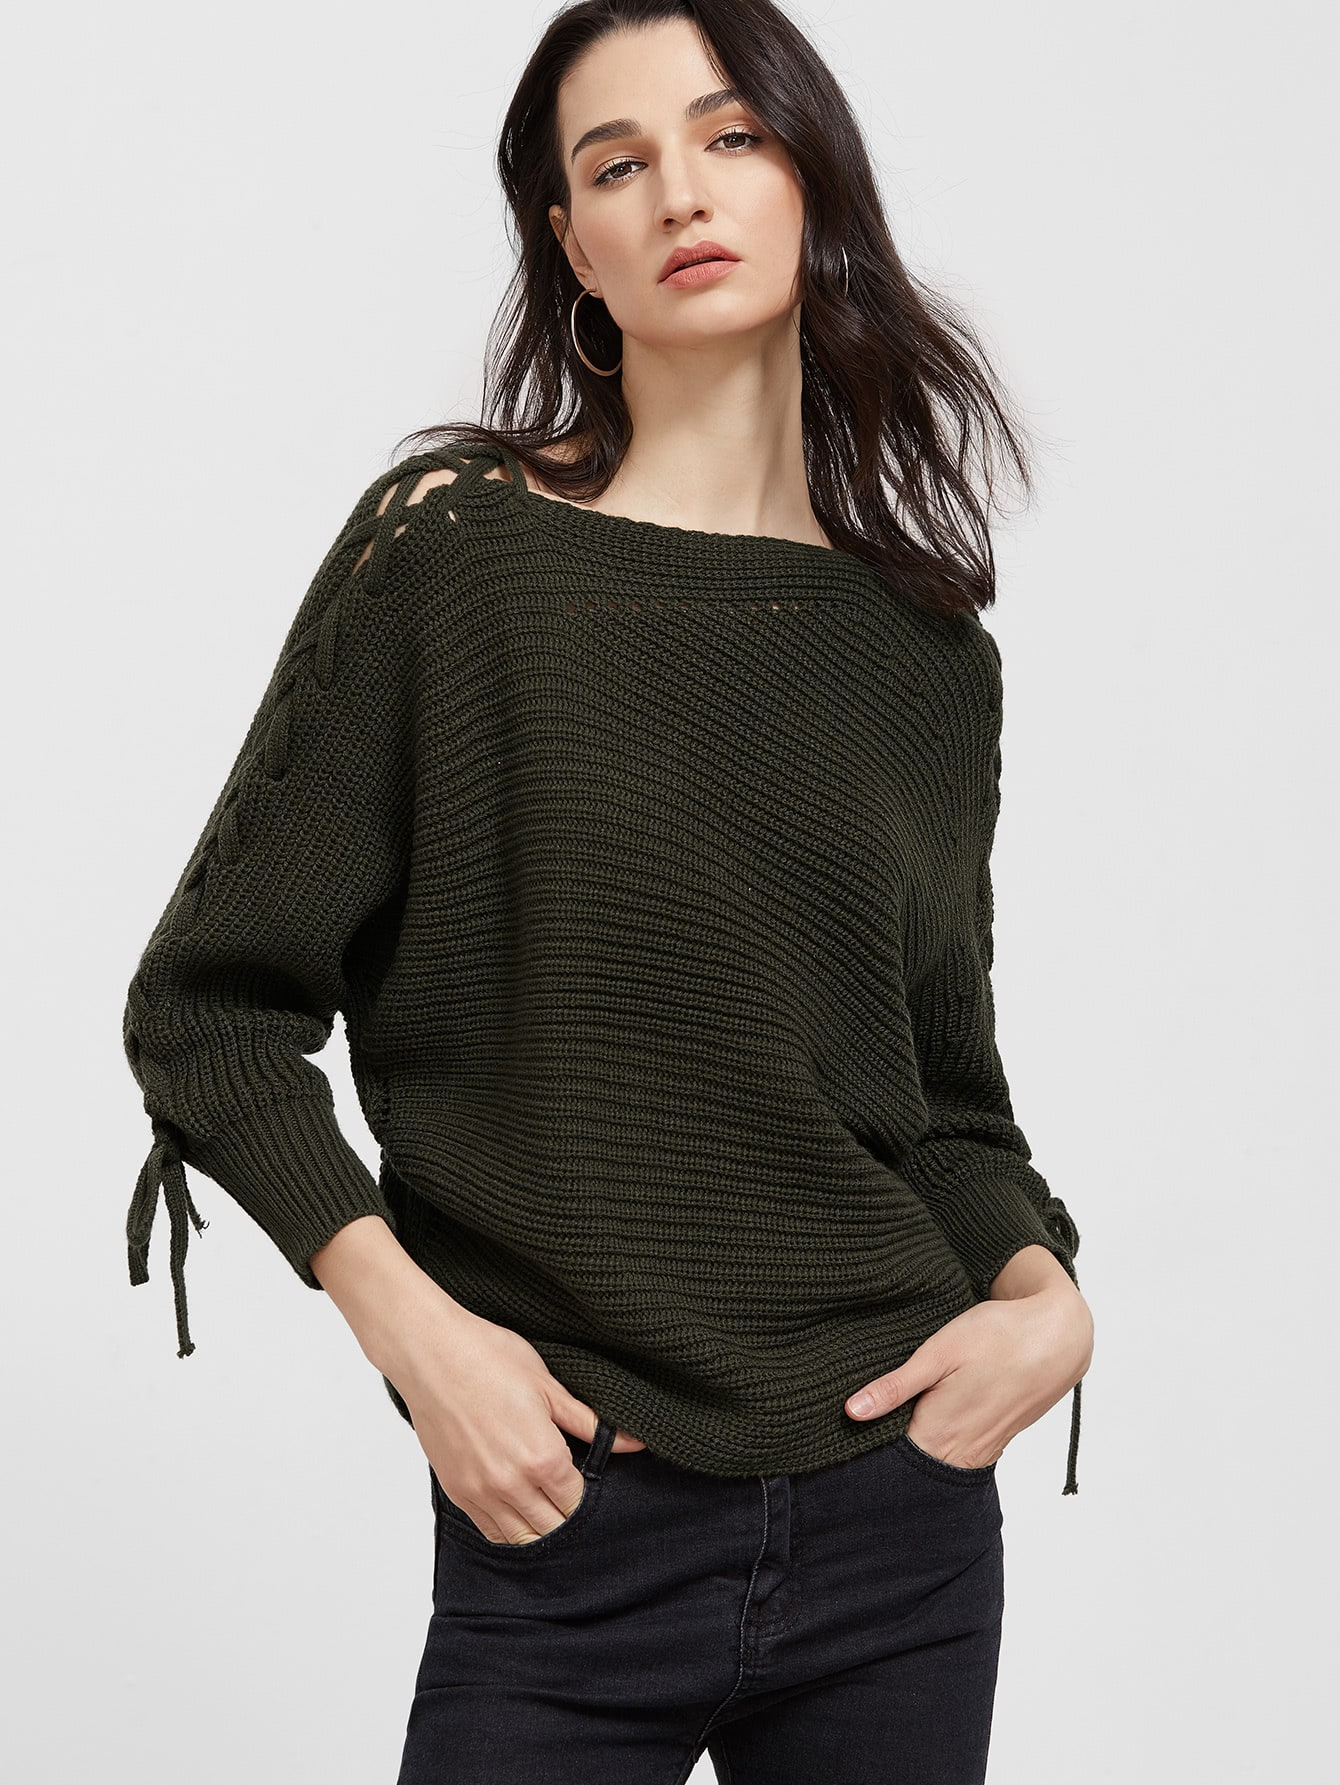 Buy Army Green Lace Sleeve Sweater